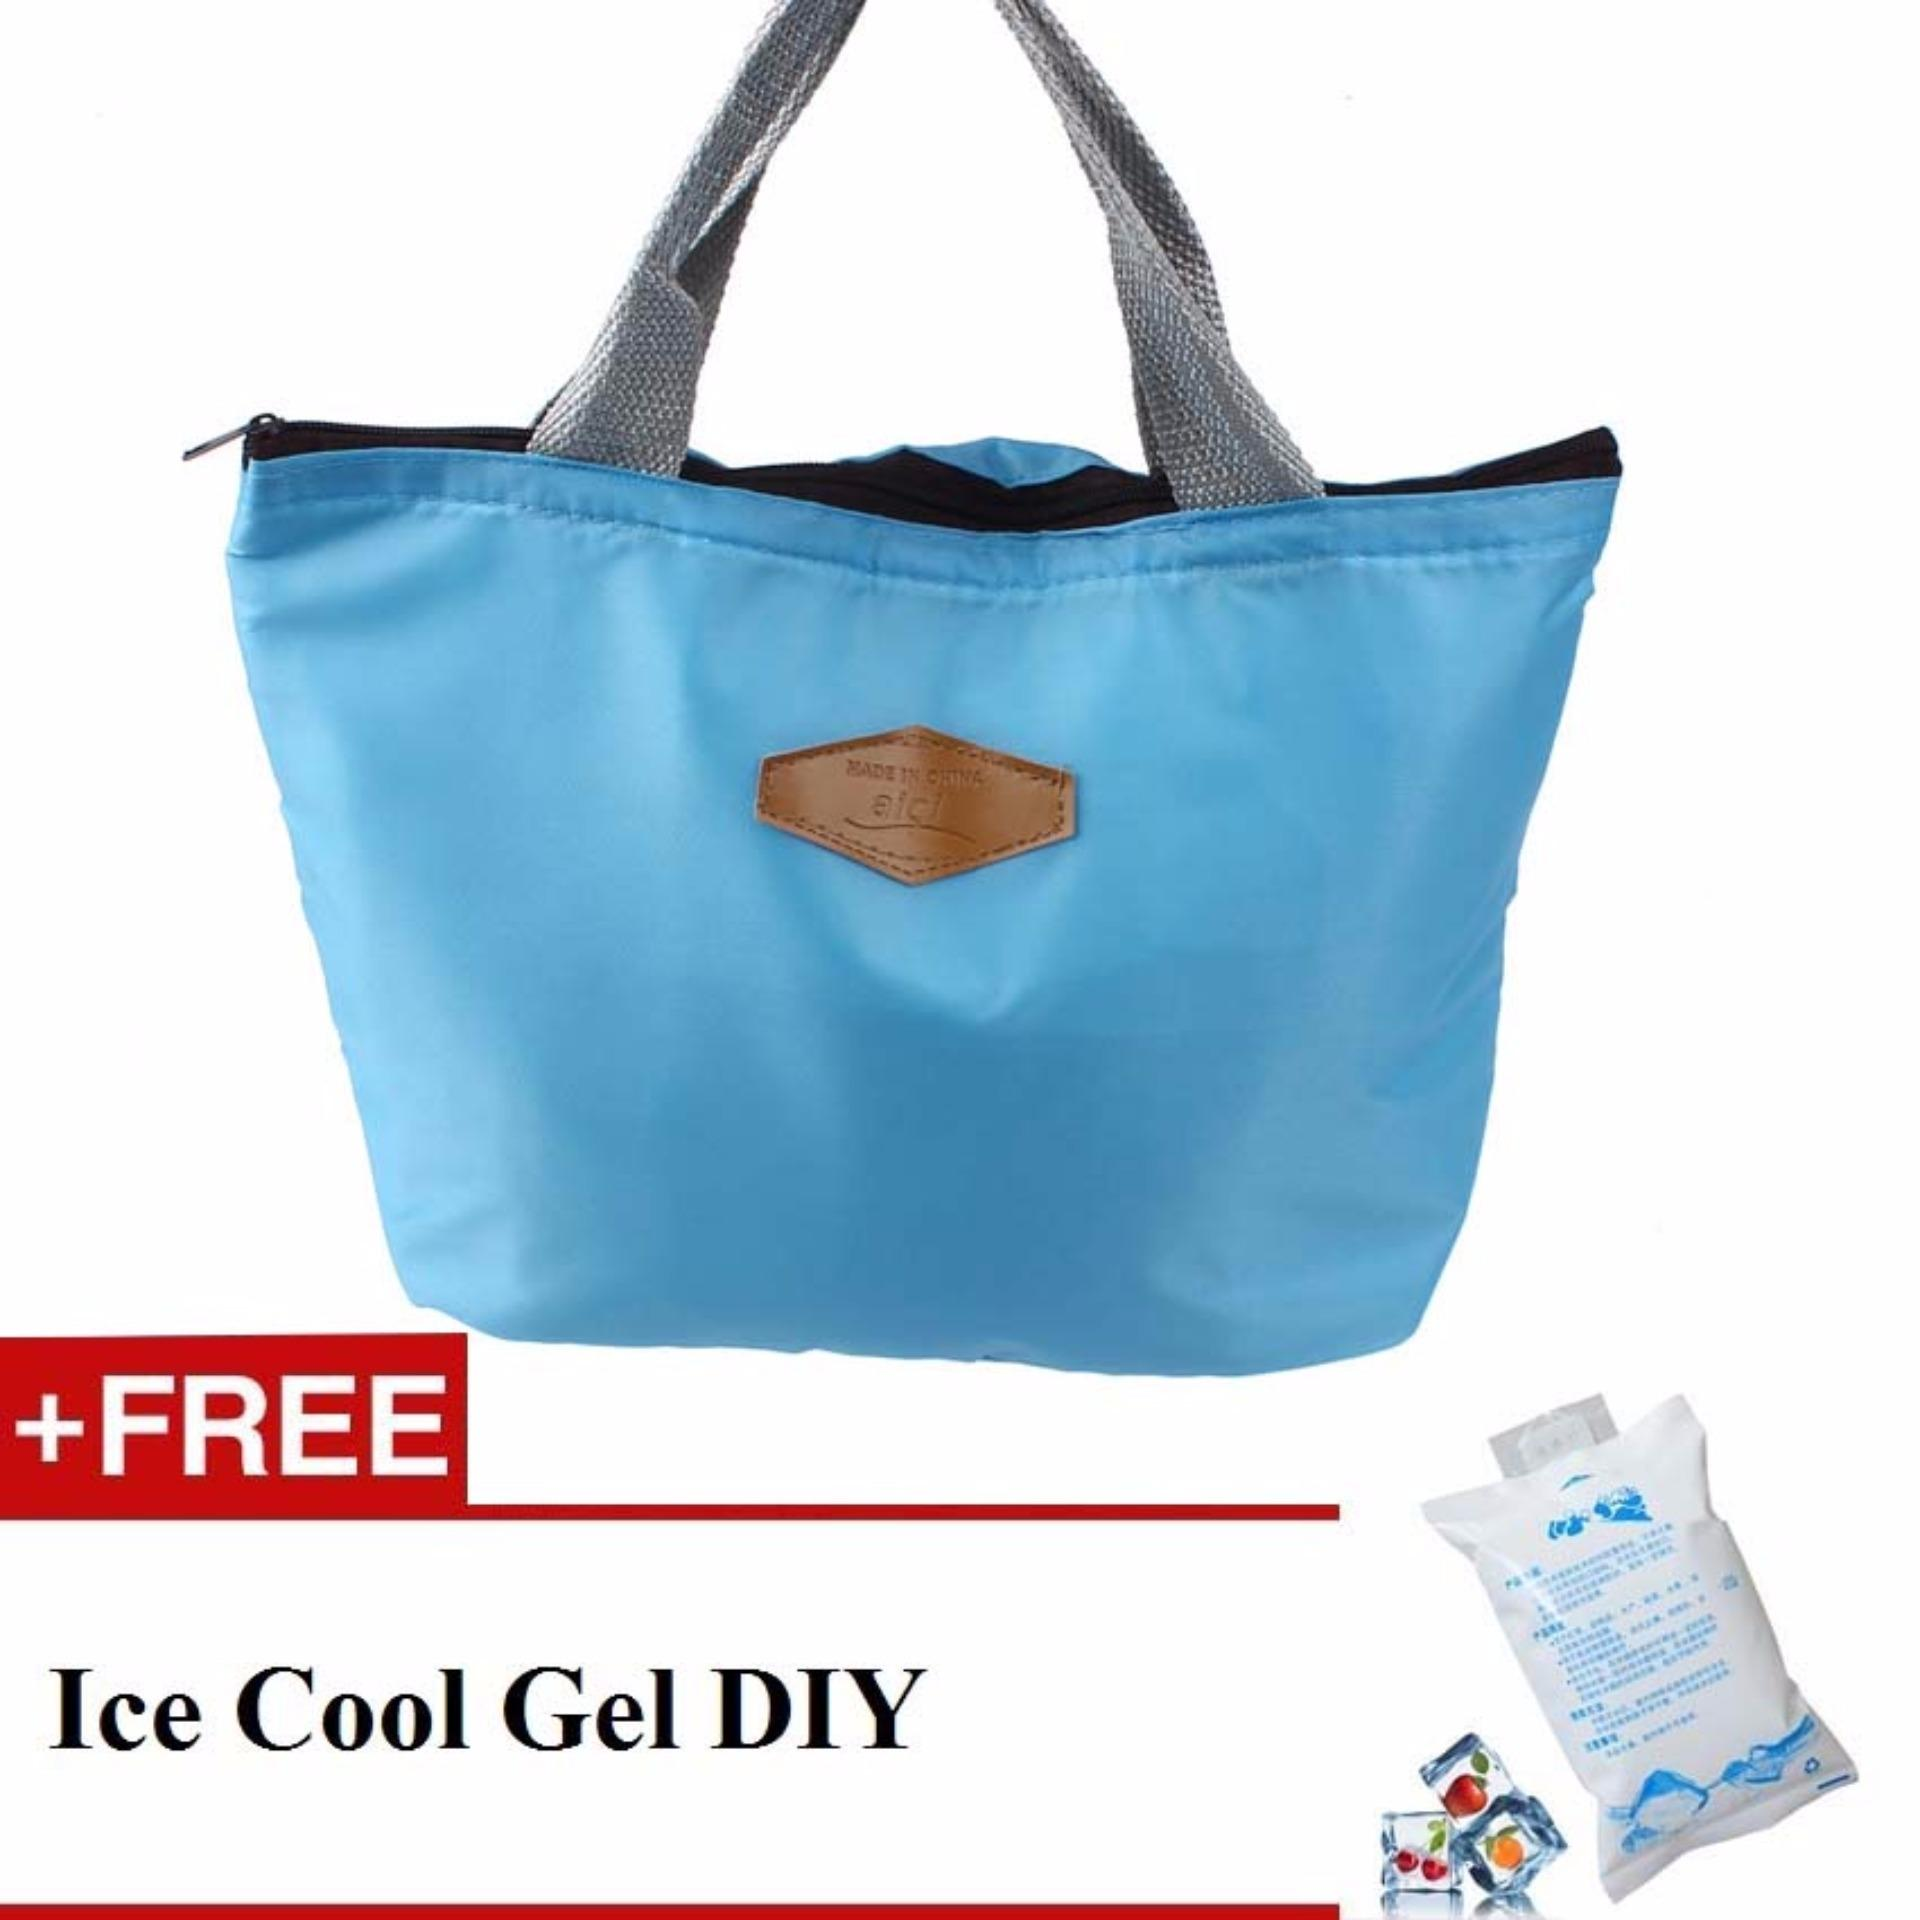 Easy to carry strap handle Lunch Bag Thermal Cooler Insulated 2nd Gen - Biru Muda + Free Ice Cool Gel DIY